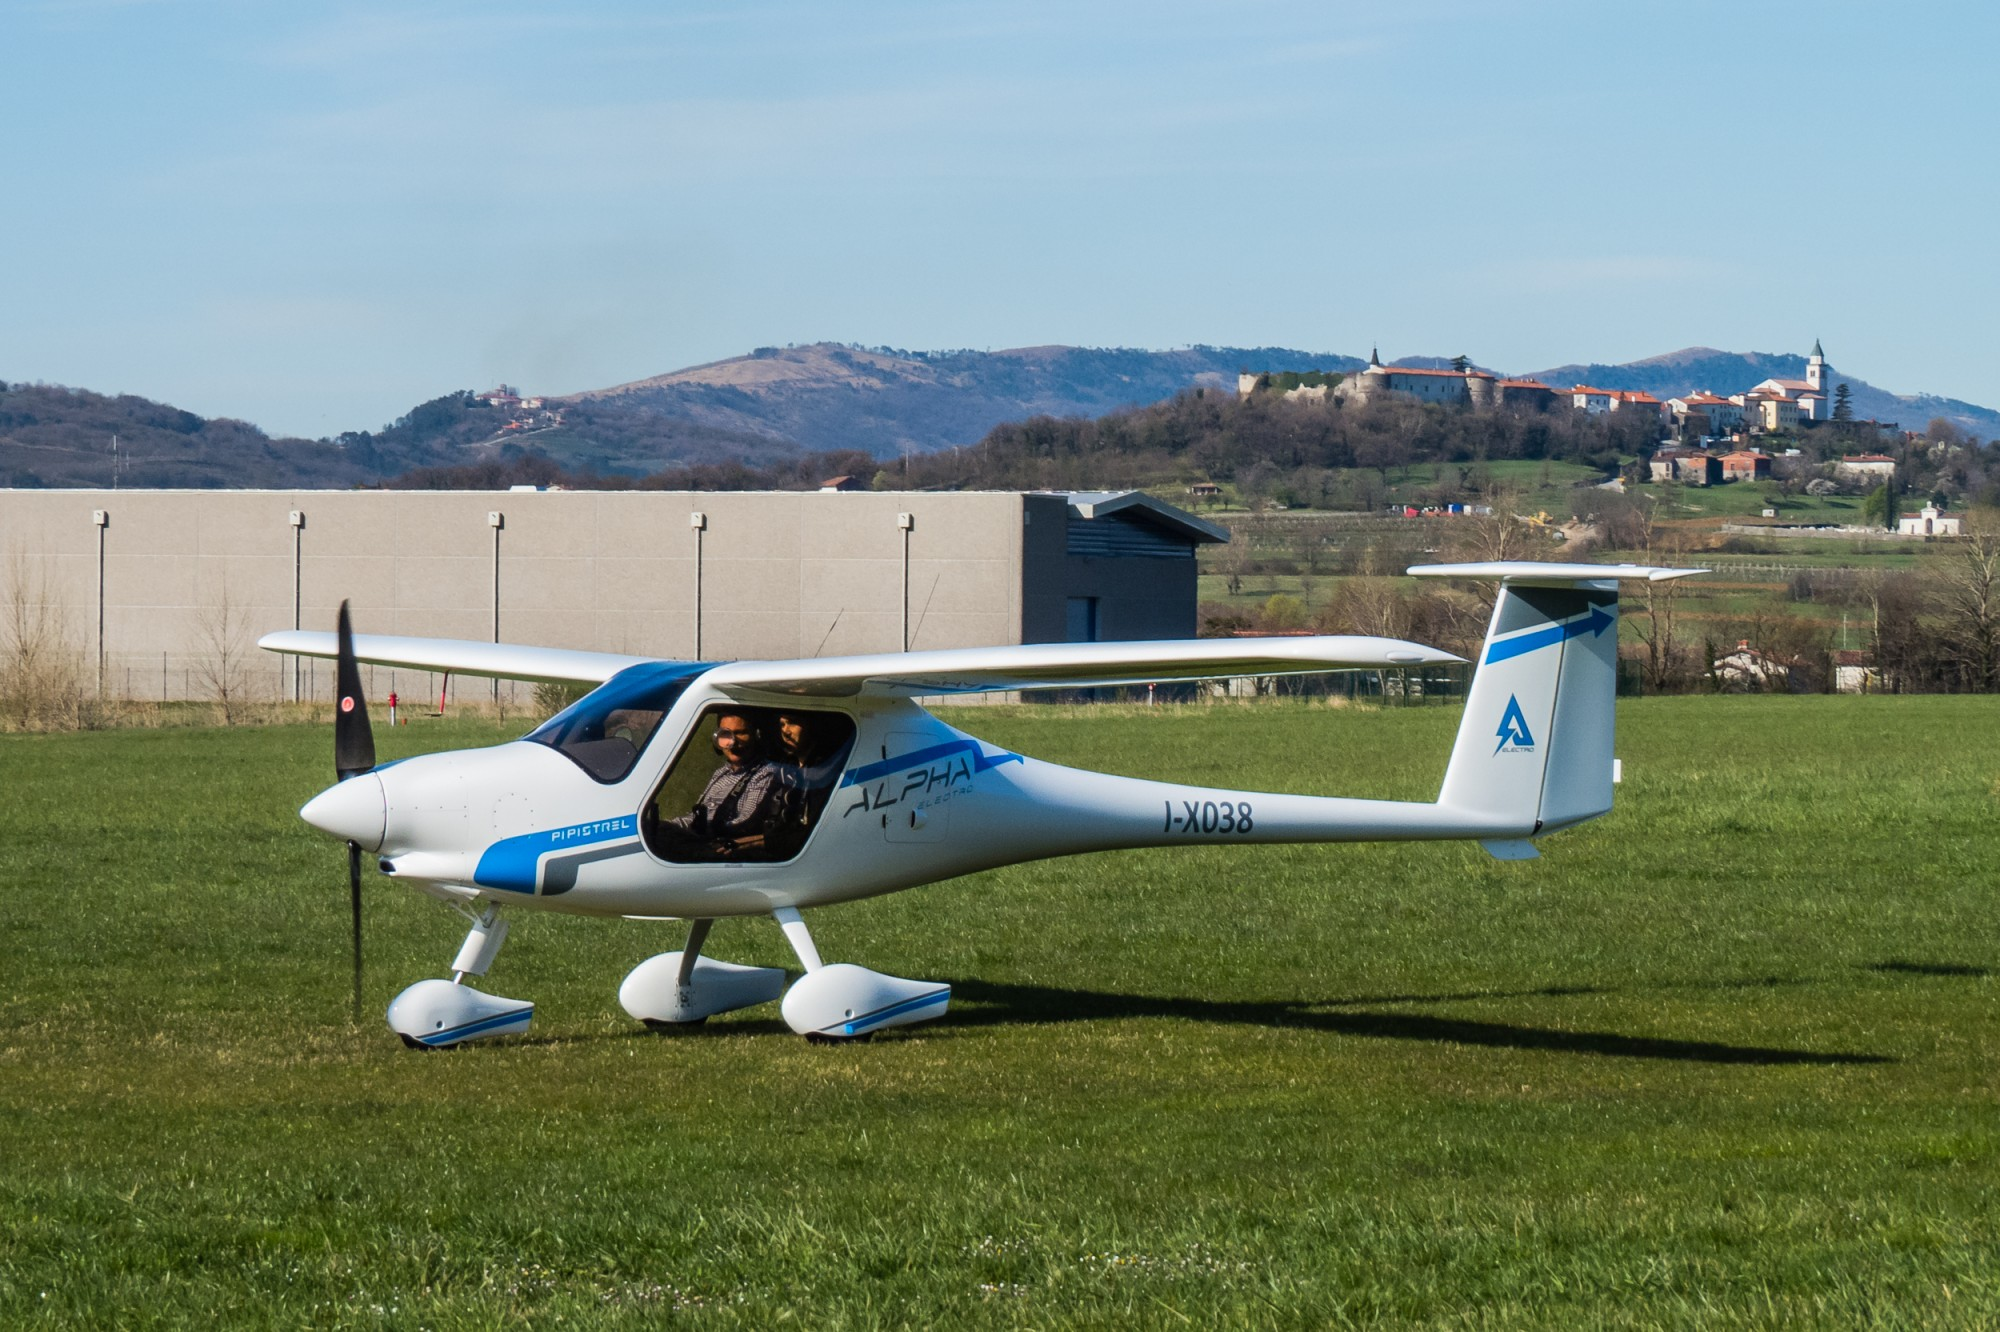 A new battery-electric airplane goes into production as